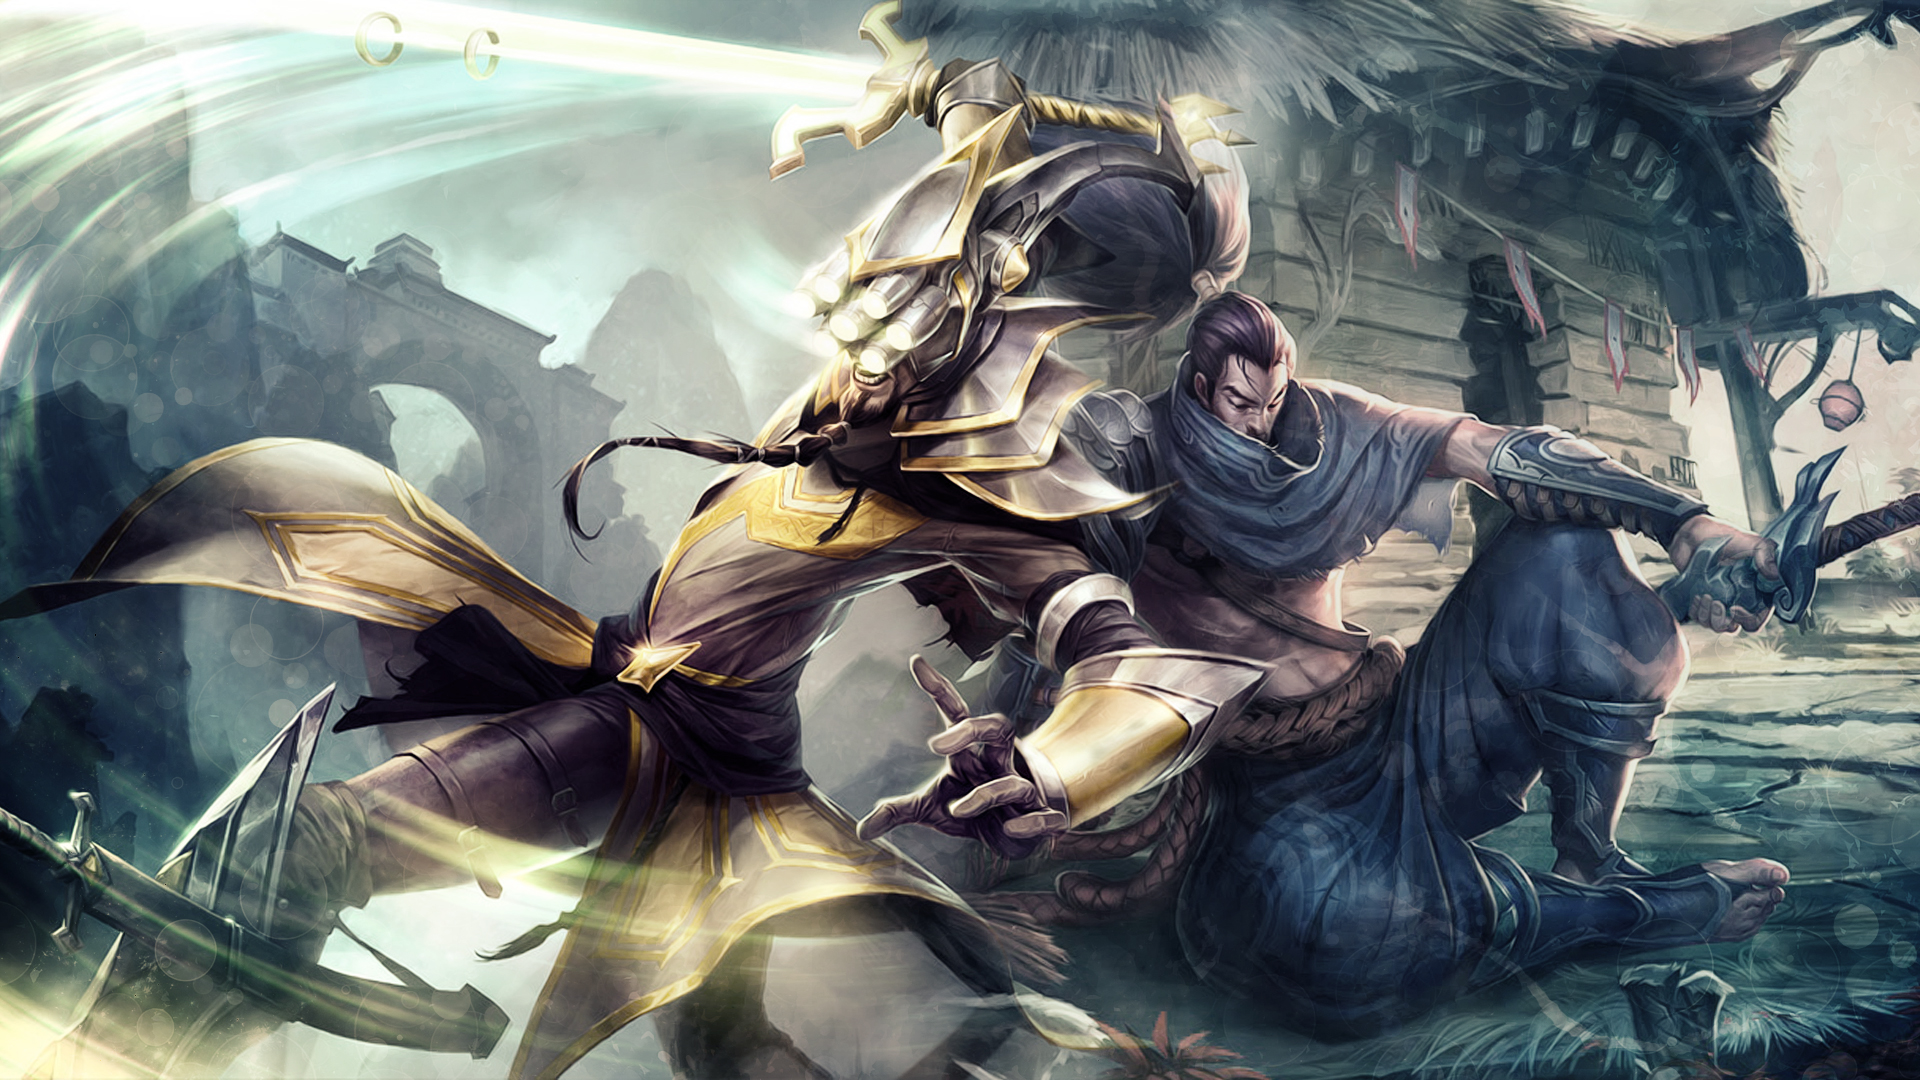 master yi vs yasuo - photo #1